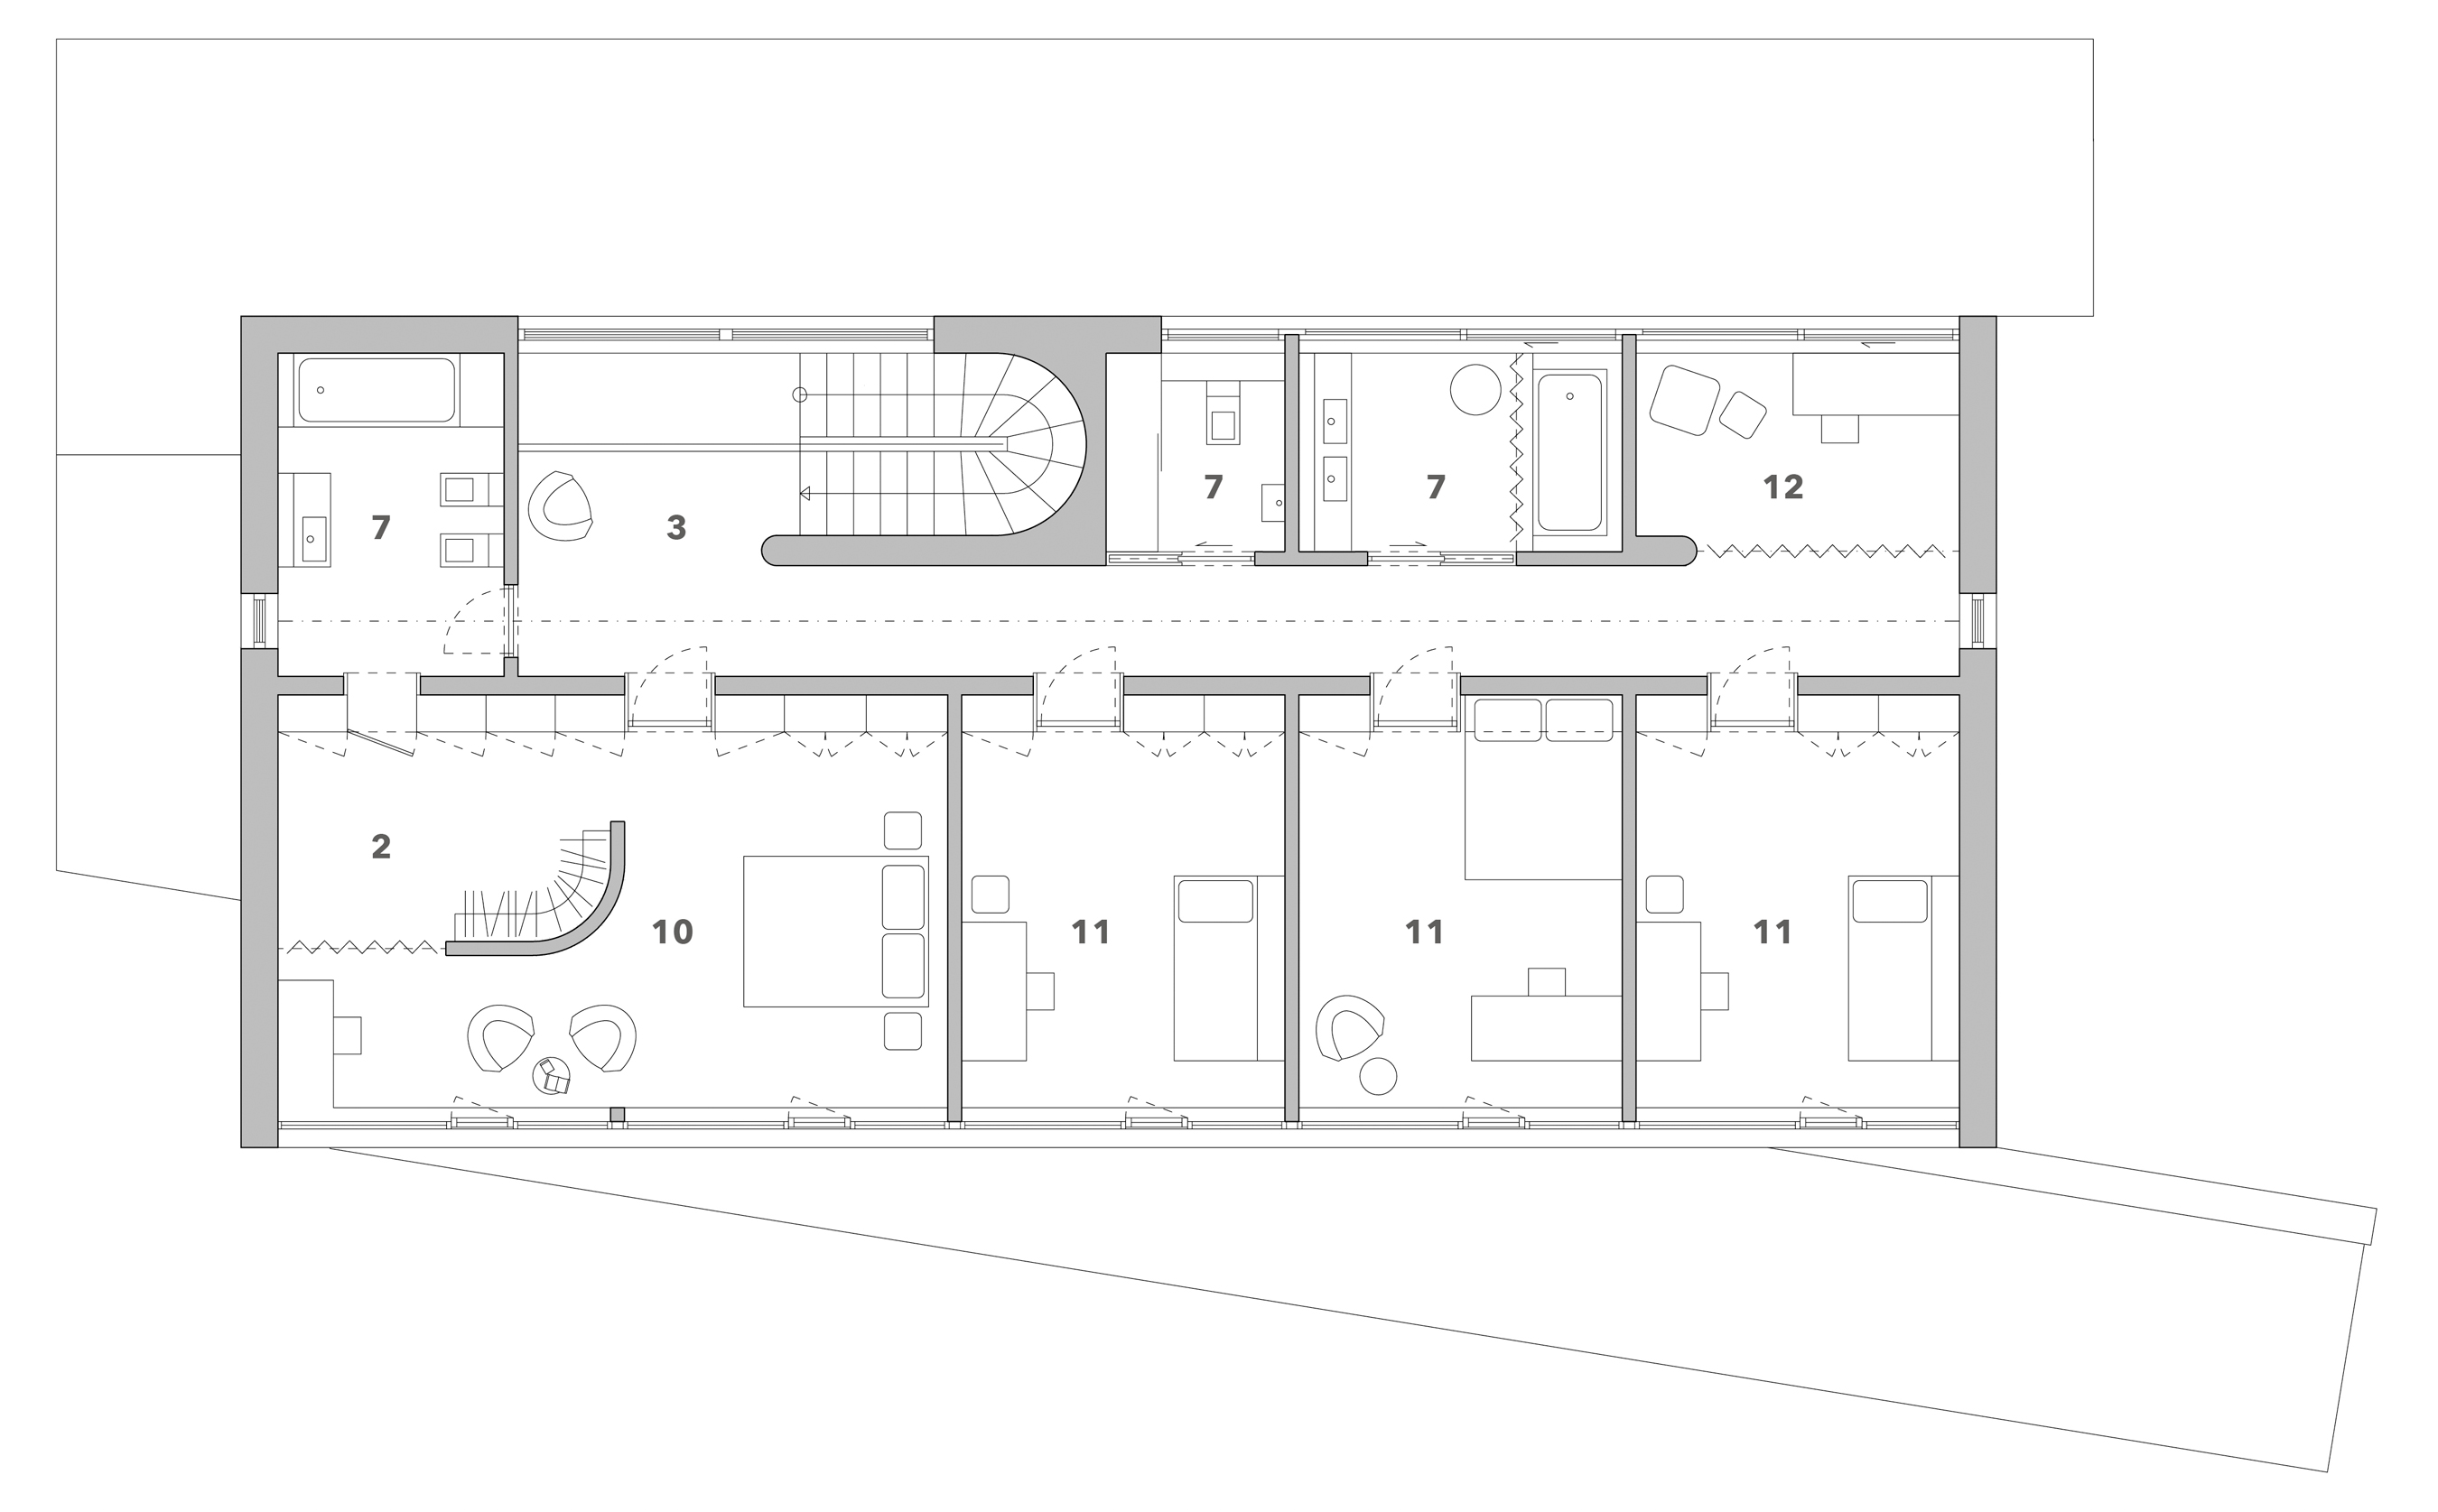 Second floor:  - 2 - Cloak room, 3 - Hallway with stairs,  7 - WC/Bathroom,  10 - master bedroom, 11 - bedroom, 12 - household workshop